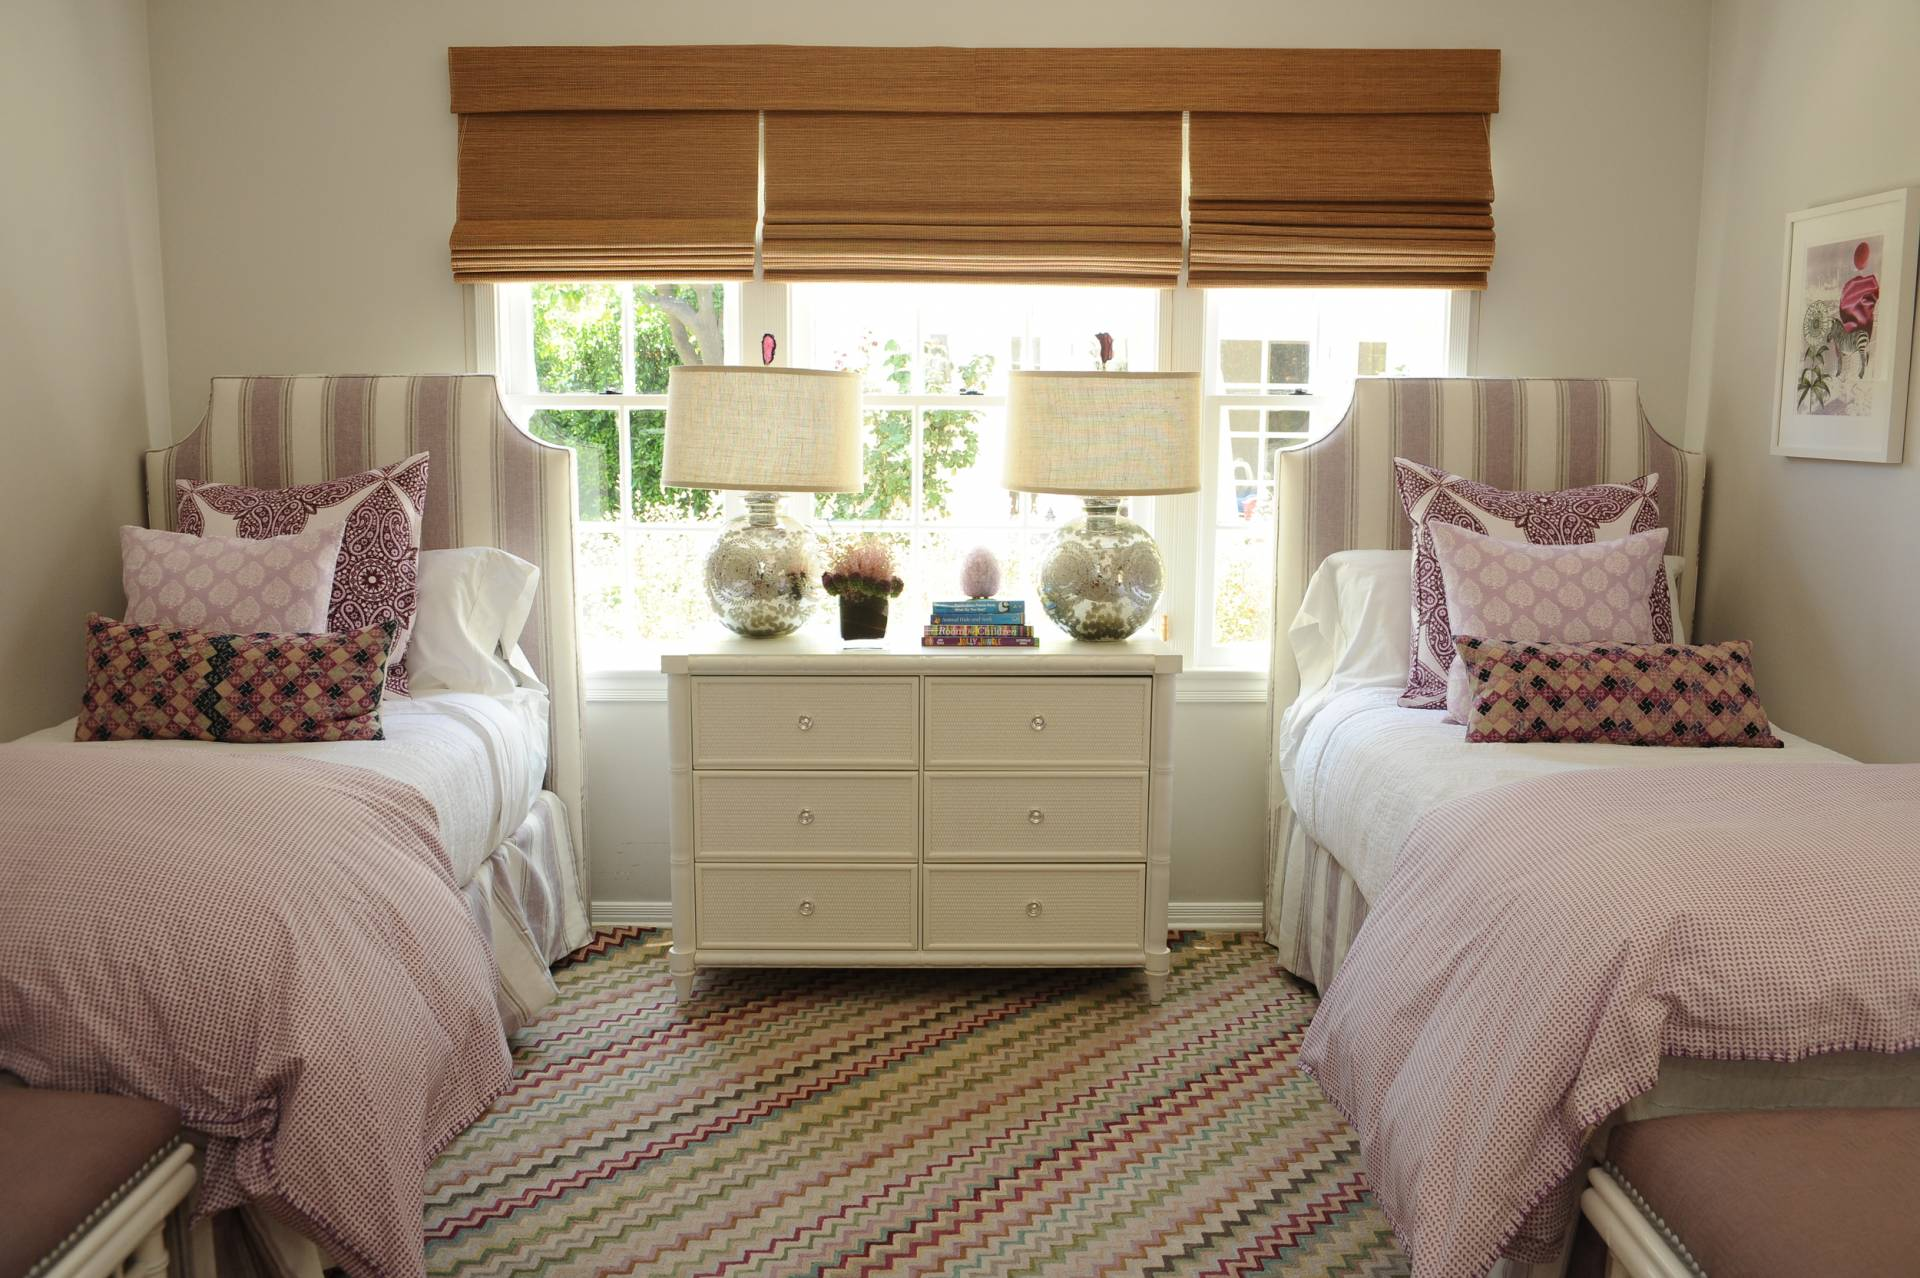 Woven shades in guest bedroom with upholstered headboard and bedding